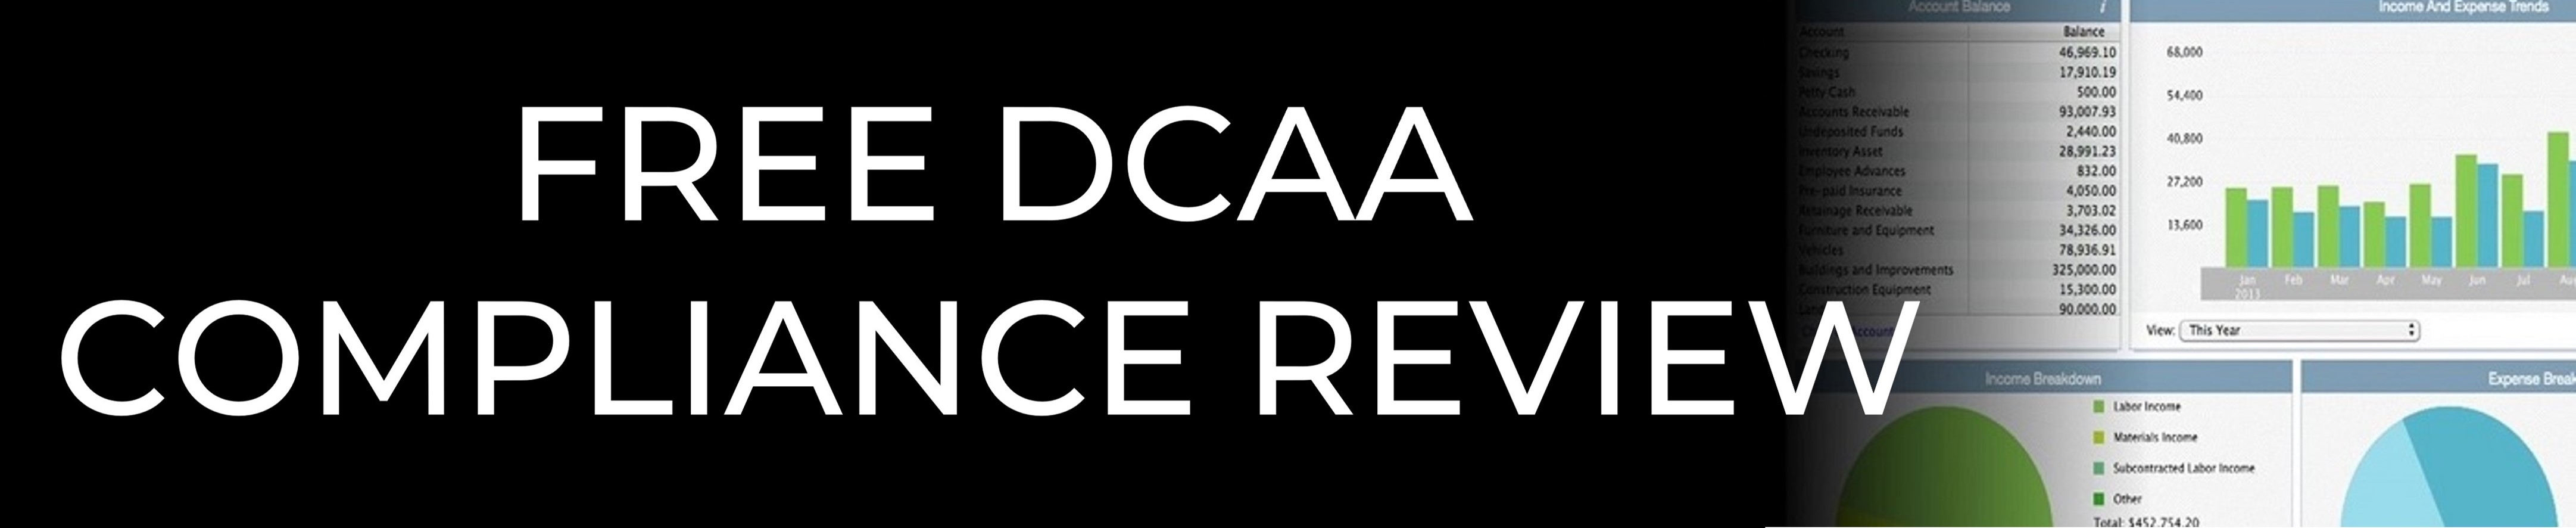 DCAA Compliance Review